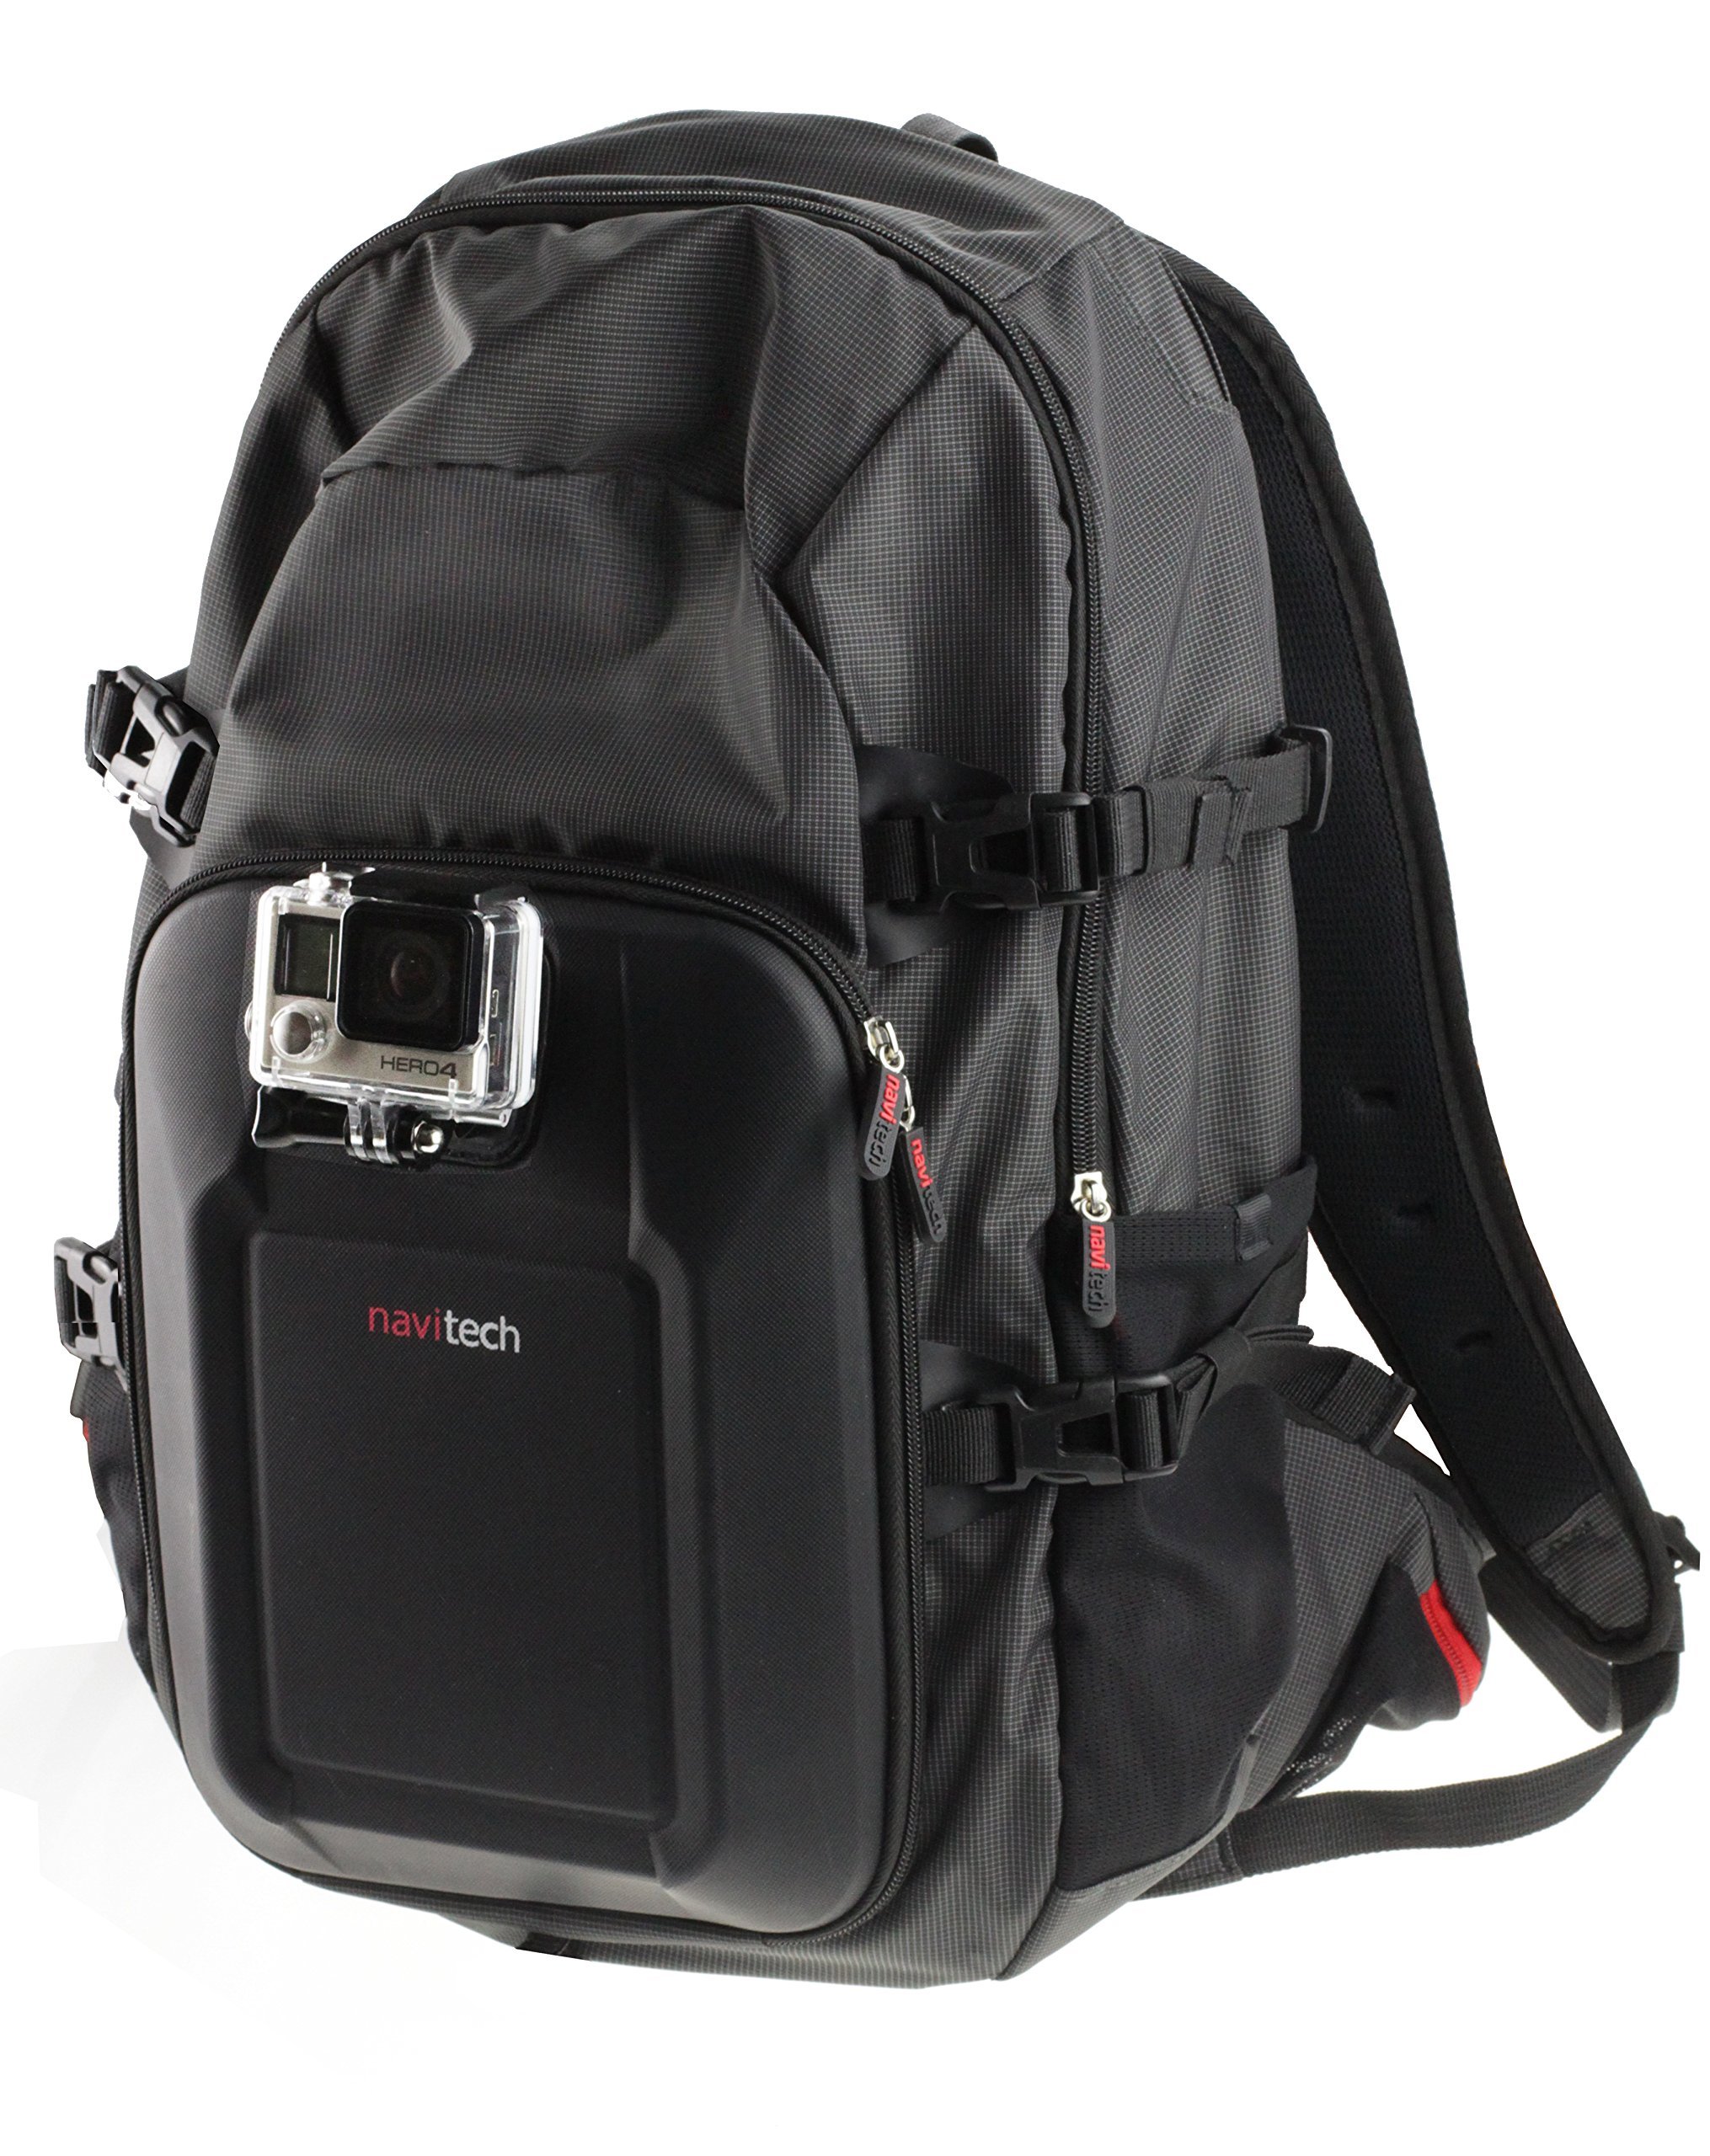 Navitech Action Camera Backpack With Integrated Chest Strap Compatible With The MixMart 360 ° Action Camera Panoramic Camcorder WiFi 2448 2448 Ultra HD 30fps with 220 ° Fish-eye Lens by Navitech